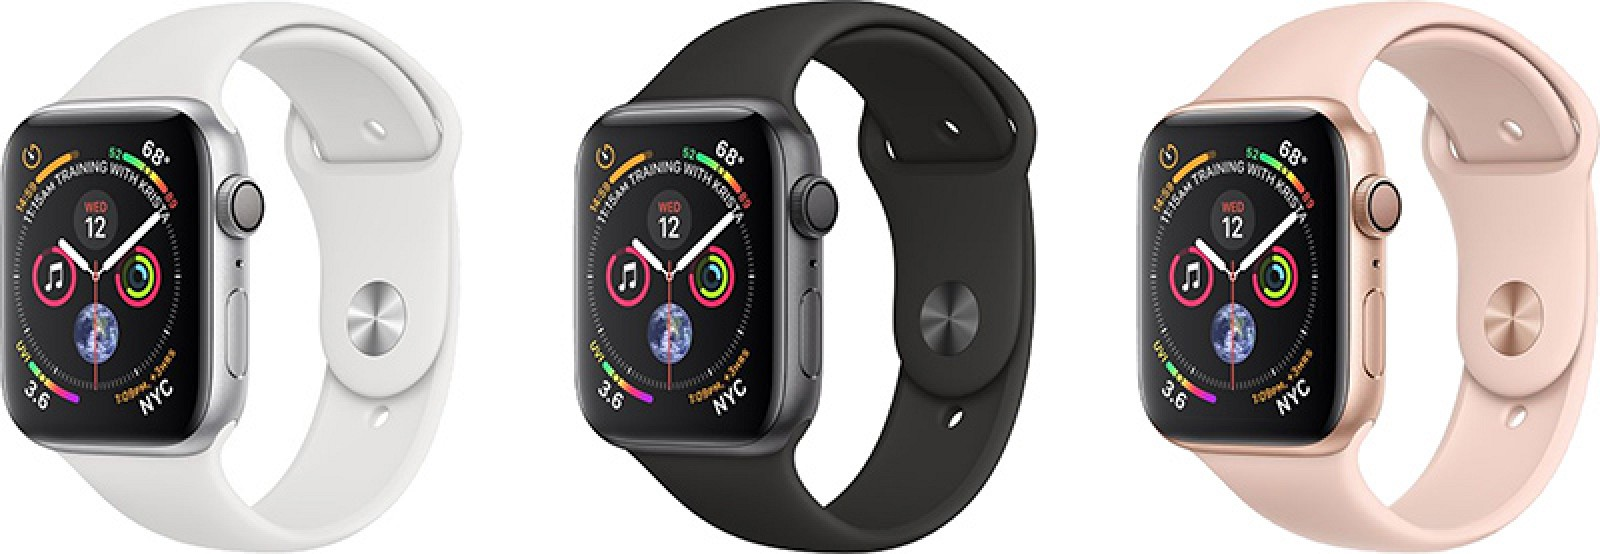 Sprint has one of the only sales on Apple Watch Series 4 this Black Friday, discounting the smart watch by $100 when customers add a line onto a qualifying service plan.